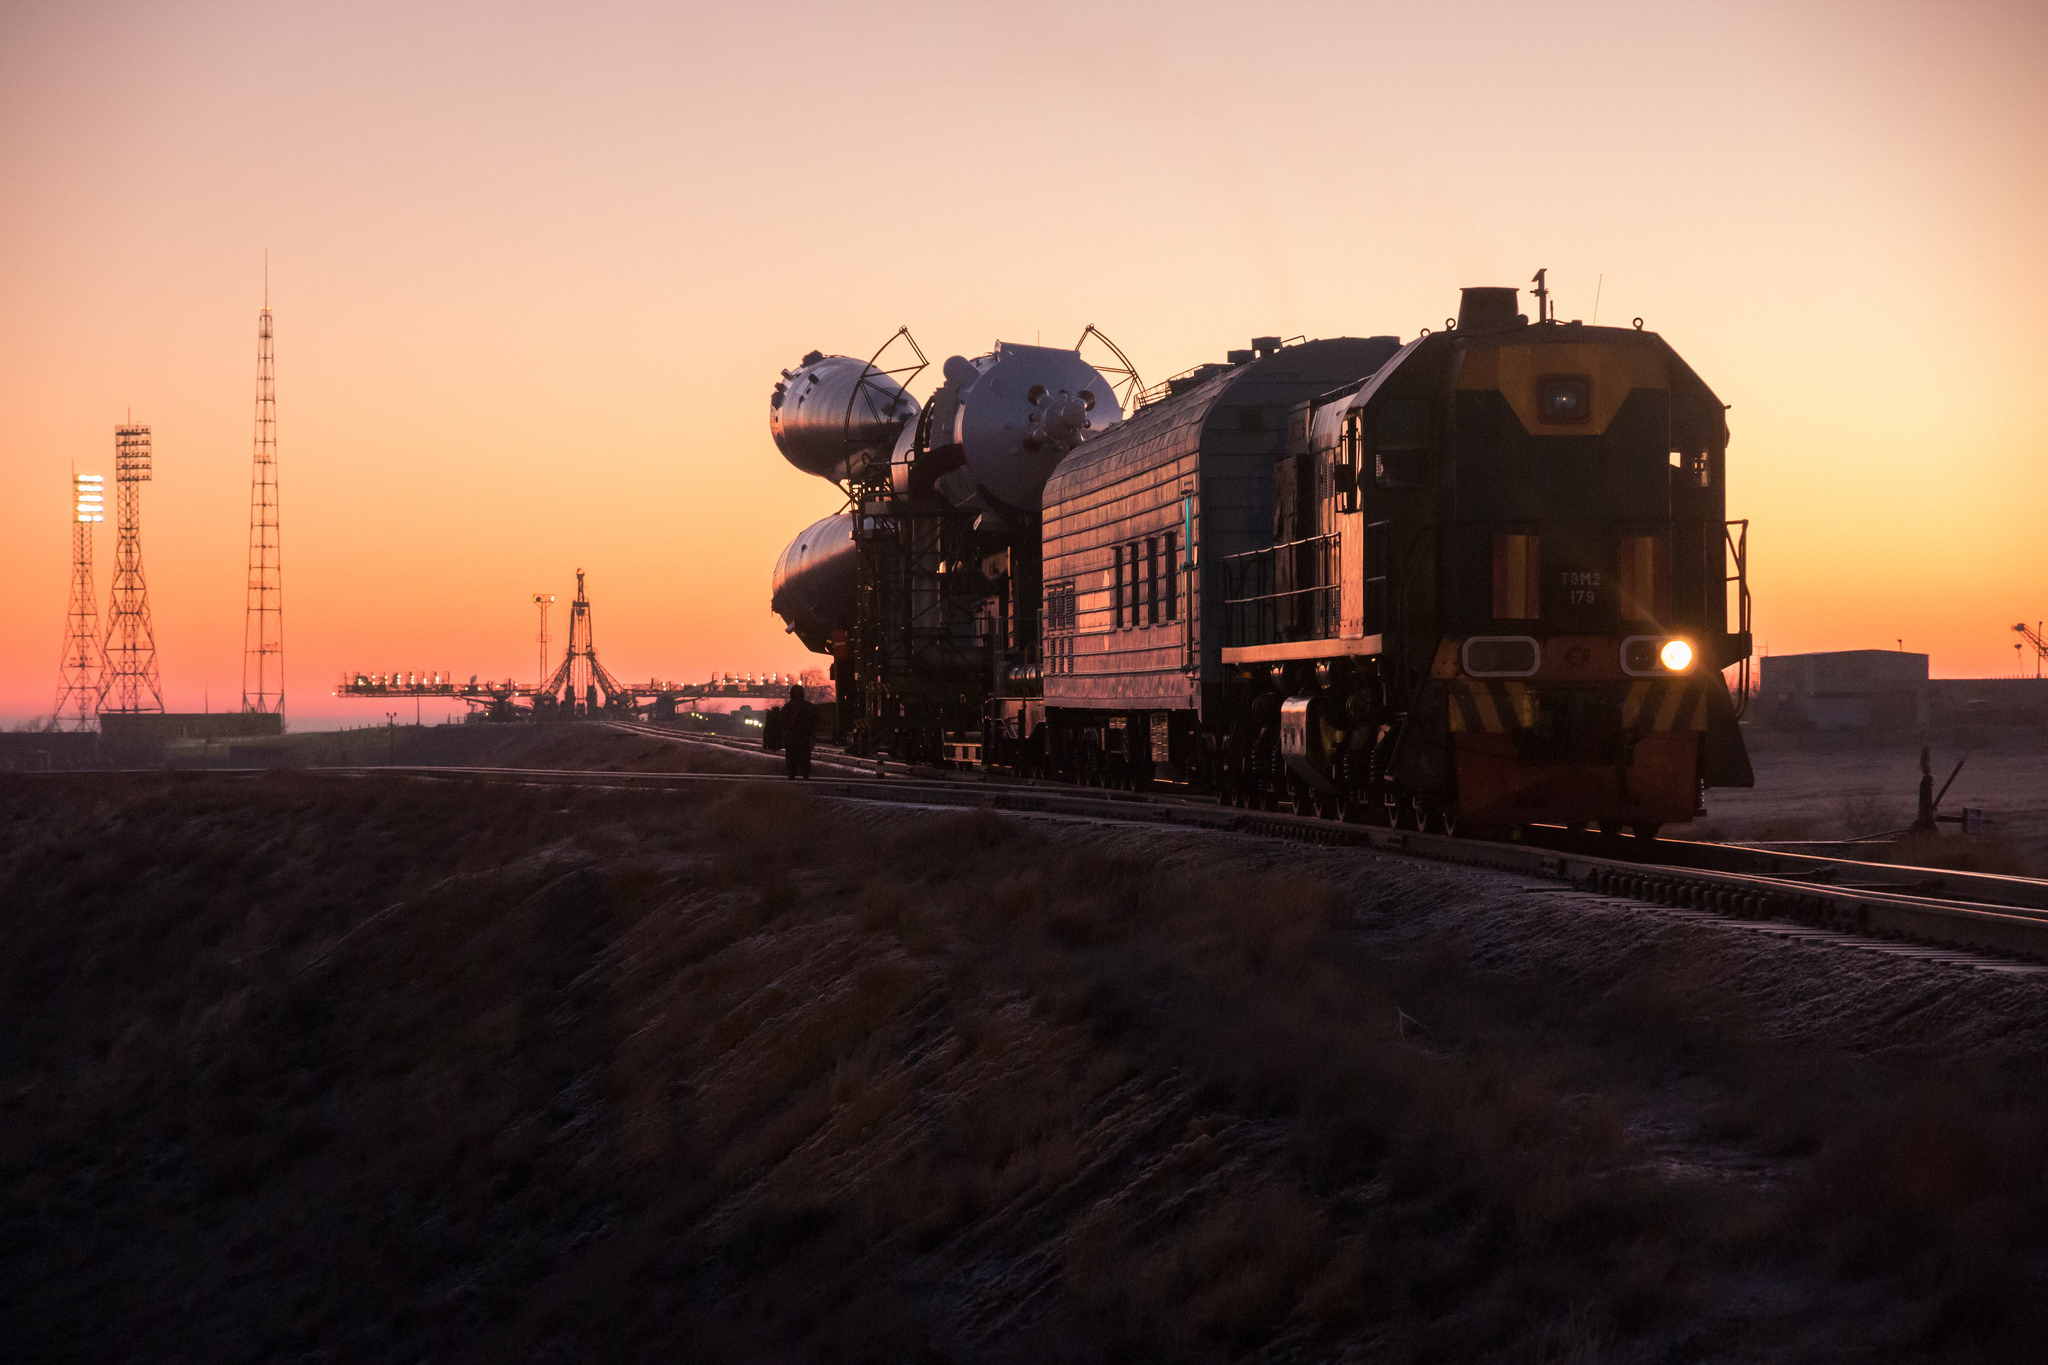 The Soyuz booster rocket and MS-11 spacecraft is rolled out to the launch pad by train on Sat. Dec.1, 2018 at the Baikonur Cosmodrome in Kazakhstan. Launch of the Soyuz rocket is scheduled for Dec. 3 and will carry Expedition 58 Soyuz Commander Oleg Kononenko of Roscosmos, Flight Engineer Anne McClain of NASA, and Flight Engineer David Saint-Jacques of the Canadian Space Agency (CSA) into orbit to begin their six and a half month mission on the International Space Station